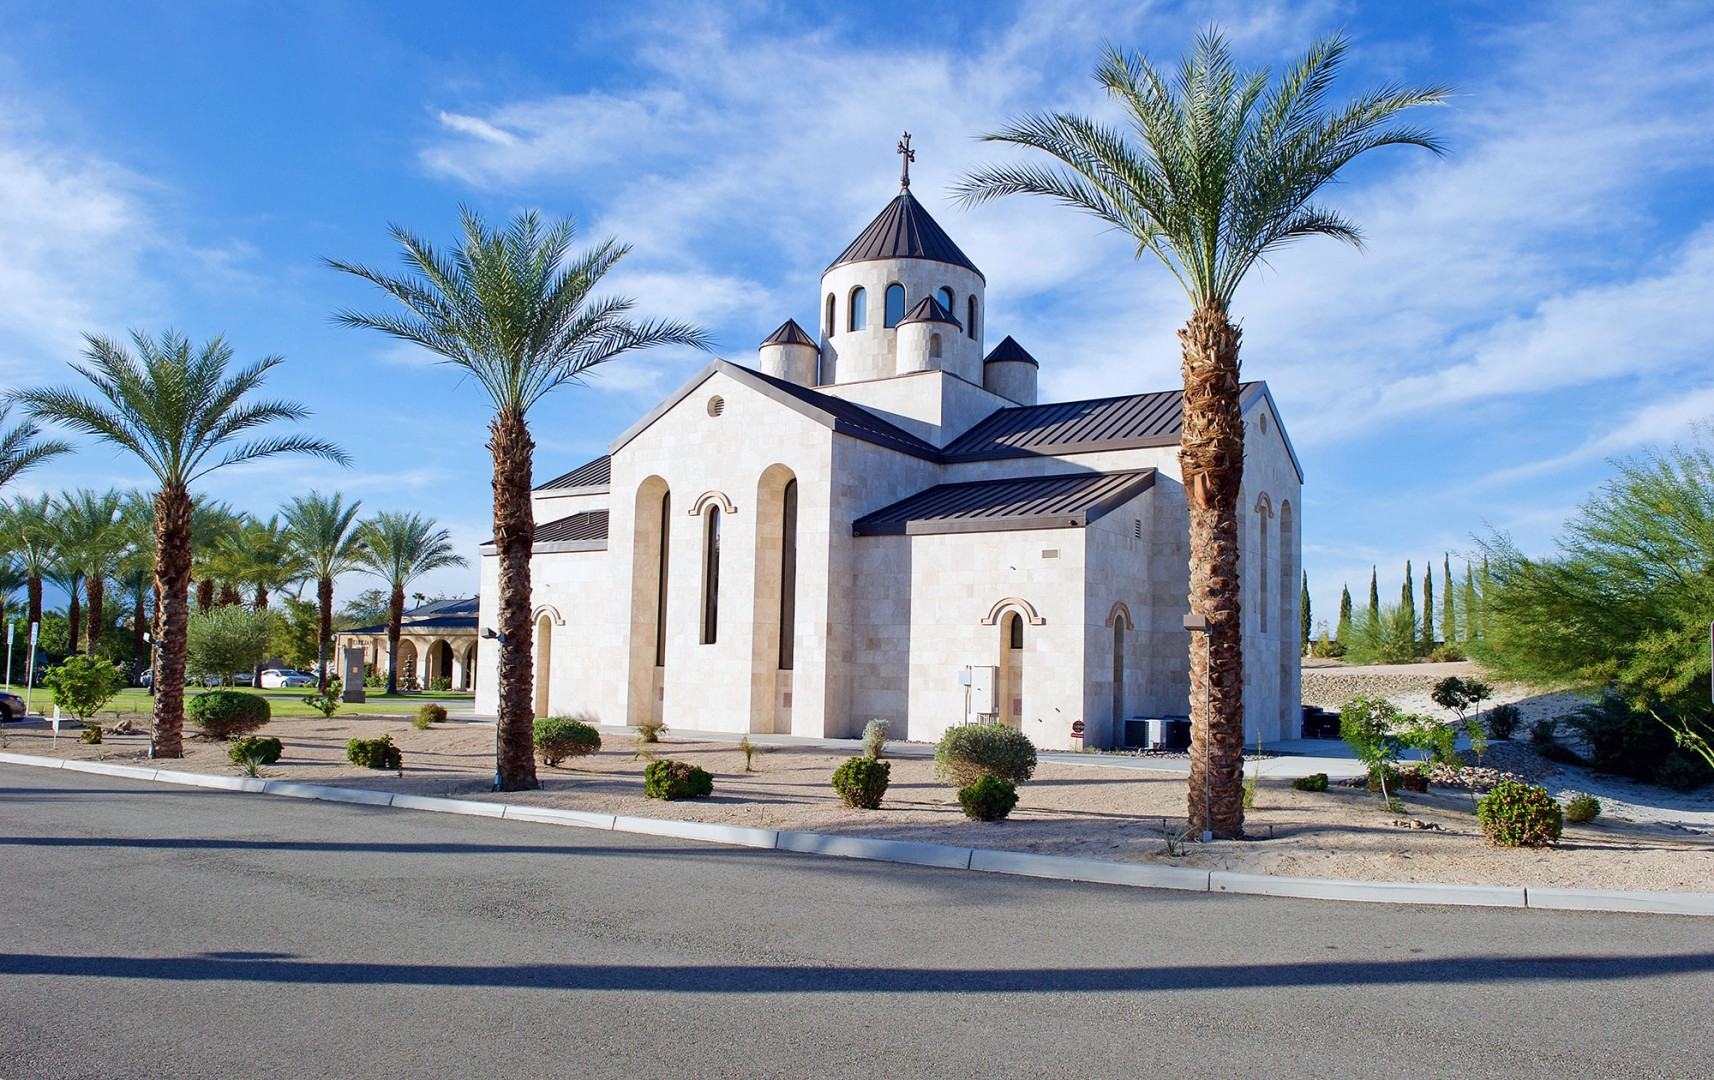 Church plain view located in Rancho Mirage County California